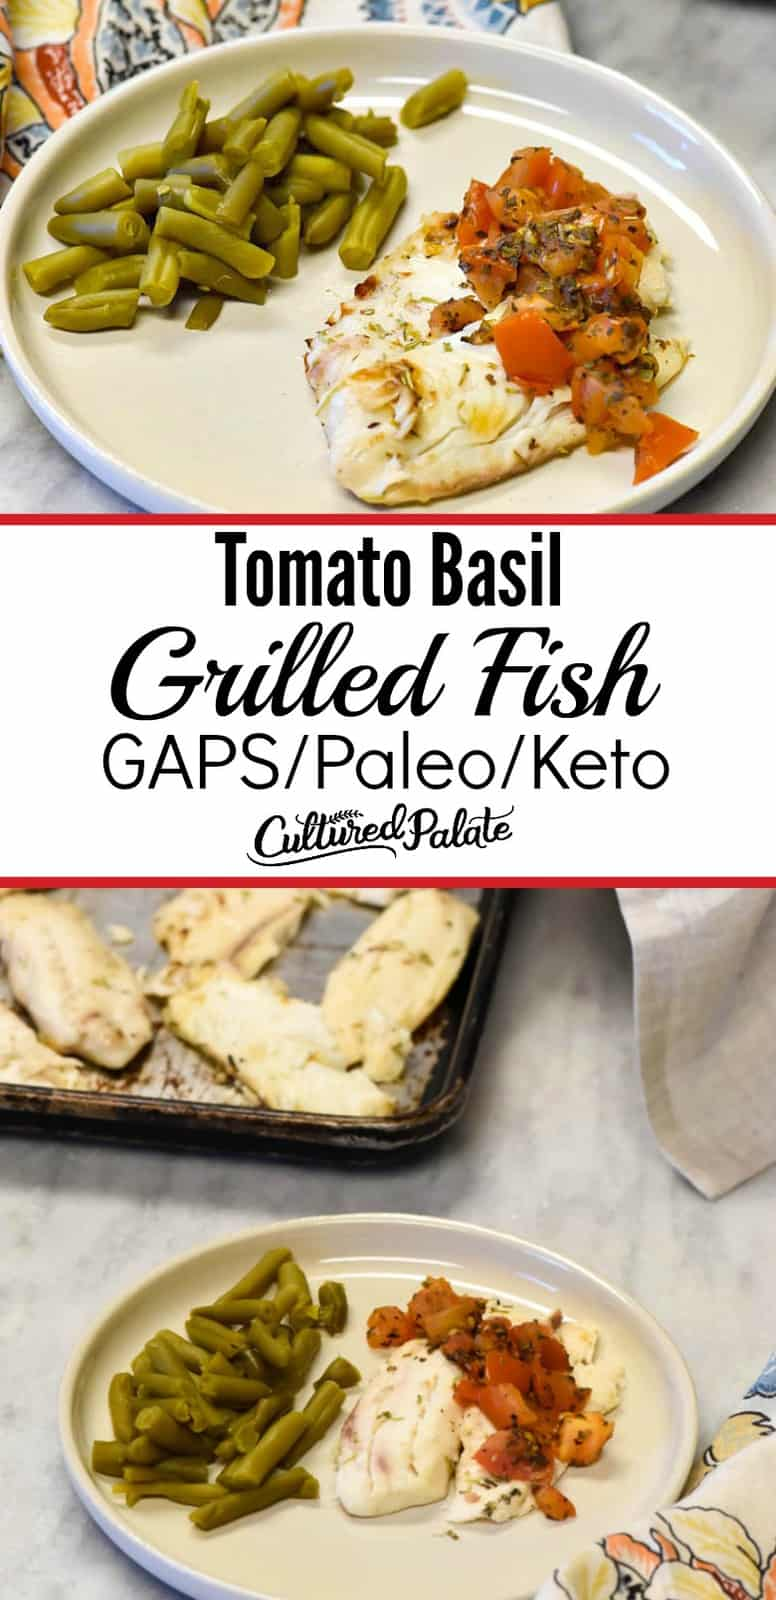 Grilled Fish recipe shown in two images with text overlay - plated and on baking sheet